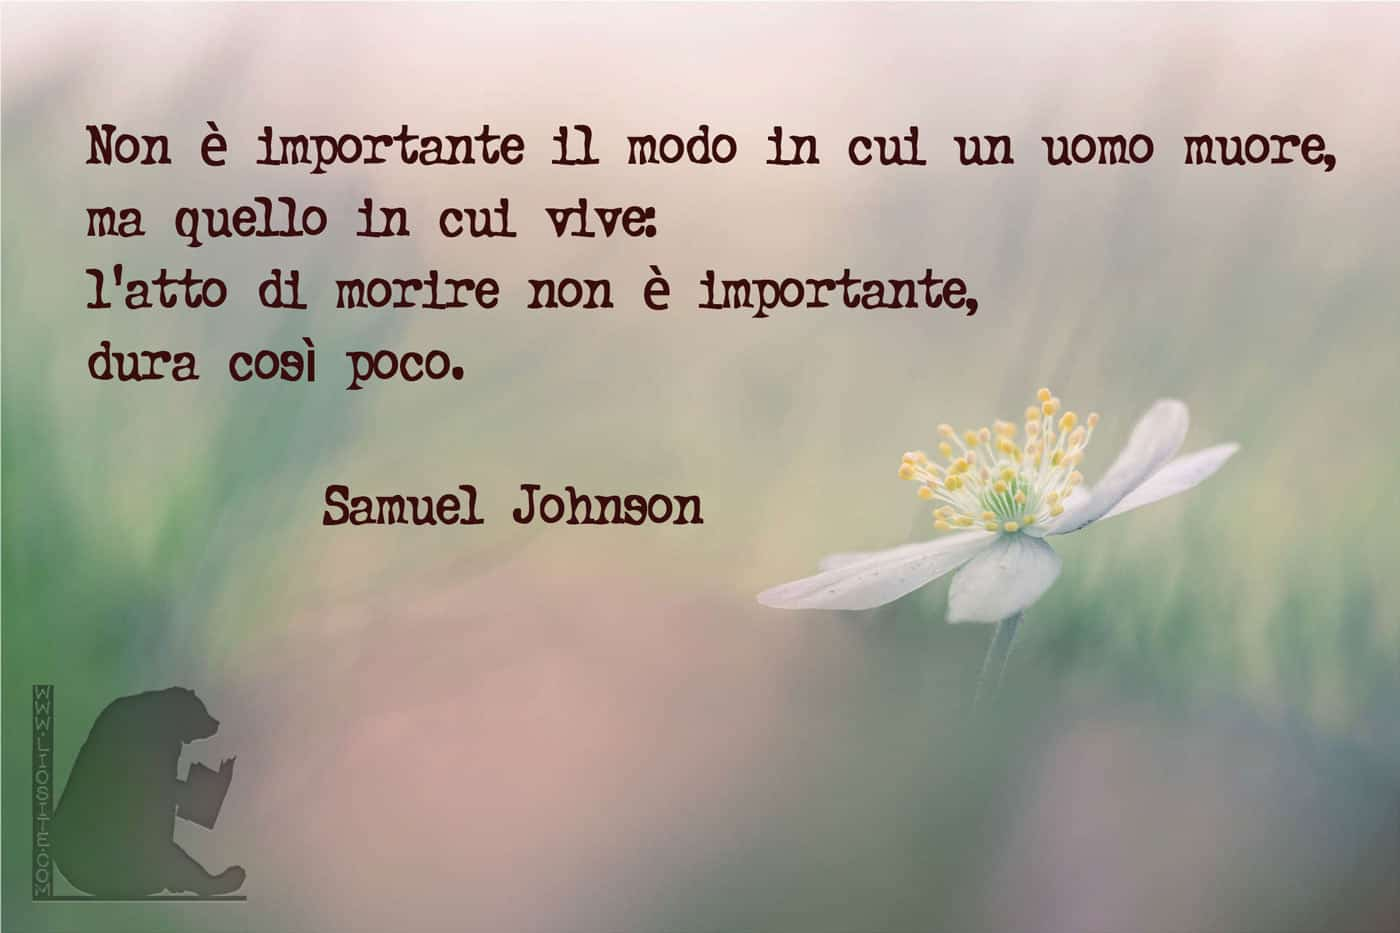 864.	Samuel Johnson